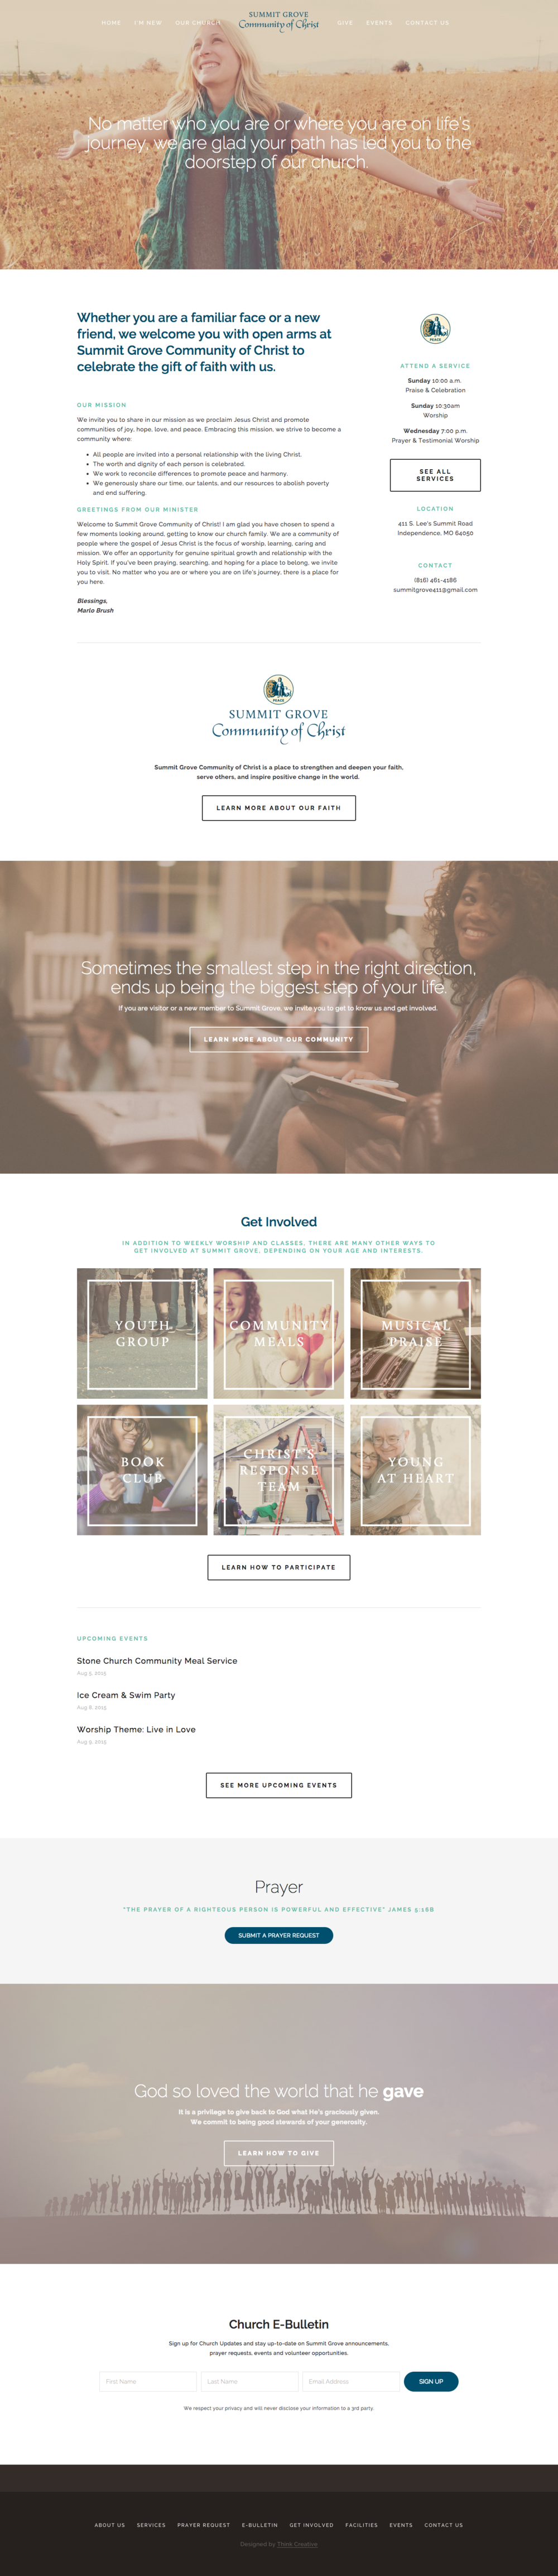 Summit Grove Community of Christ  |  Website Design  |  Think Creative Collective